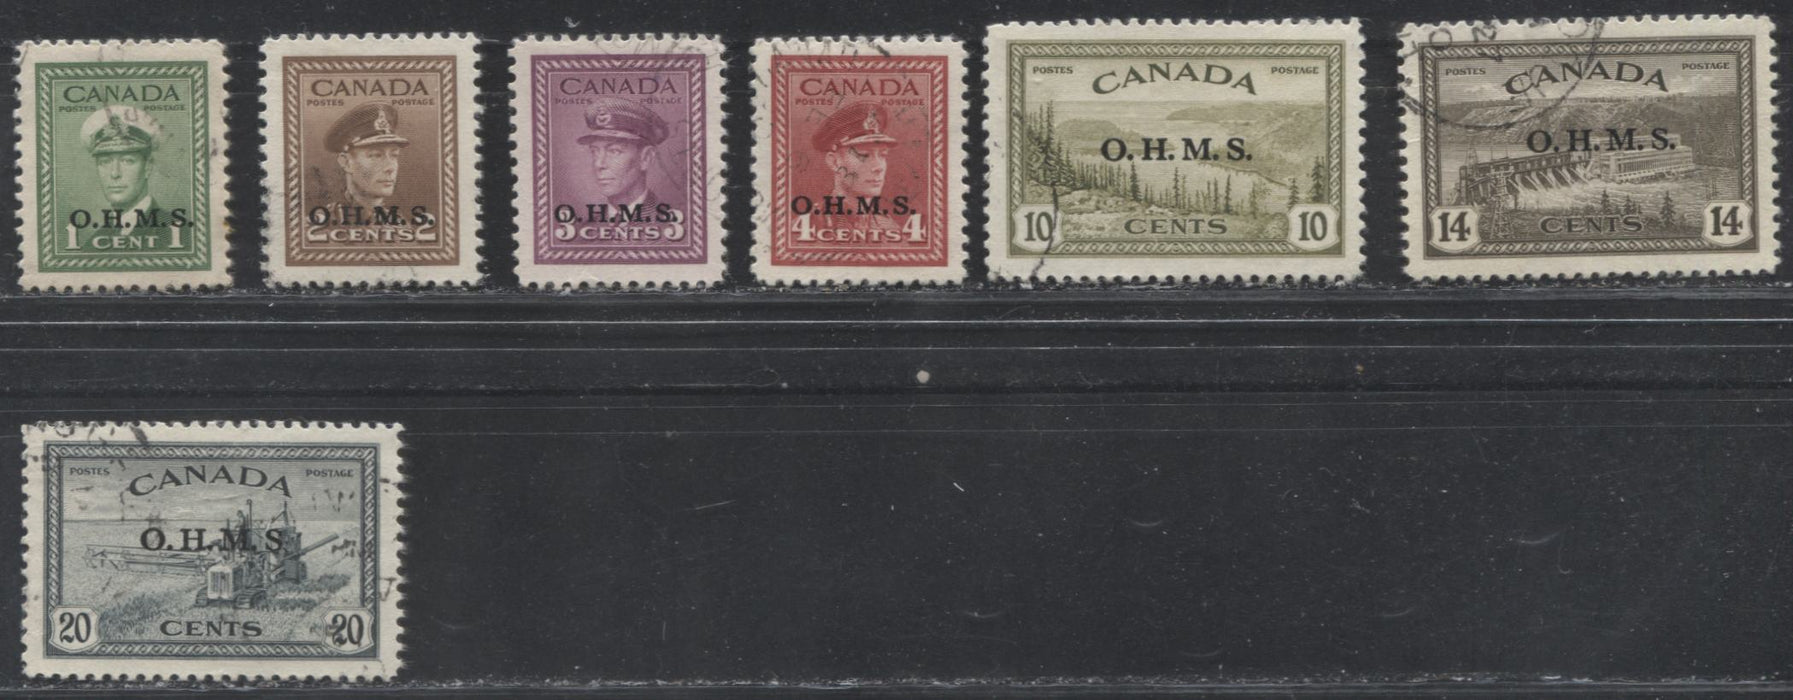 Canada #O1-O8 1c Green - 20c Slate Green, 1946-1952 Peace Issue, VF Used Examples of the OHMS Overprints